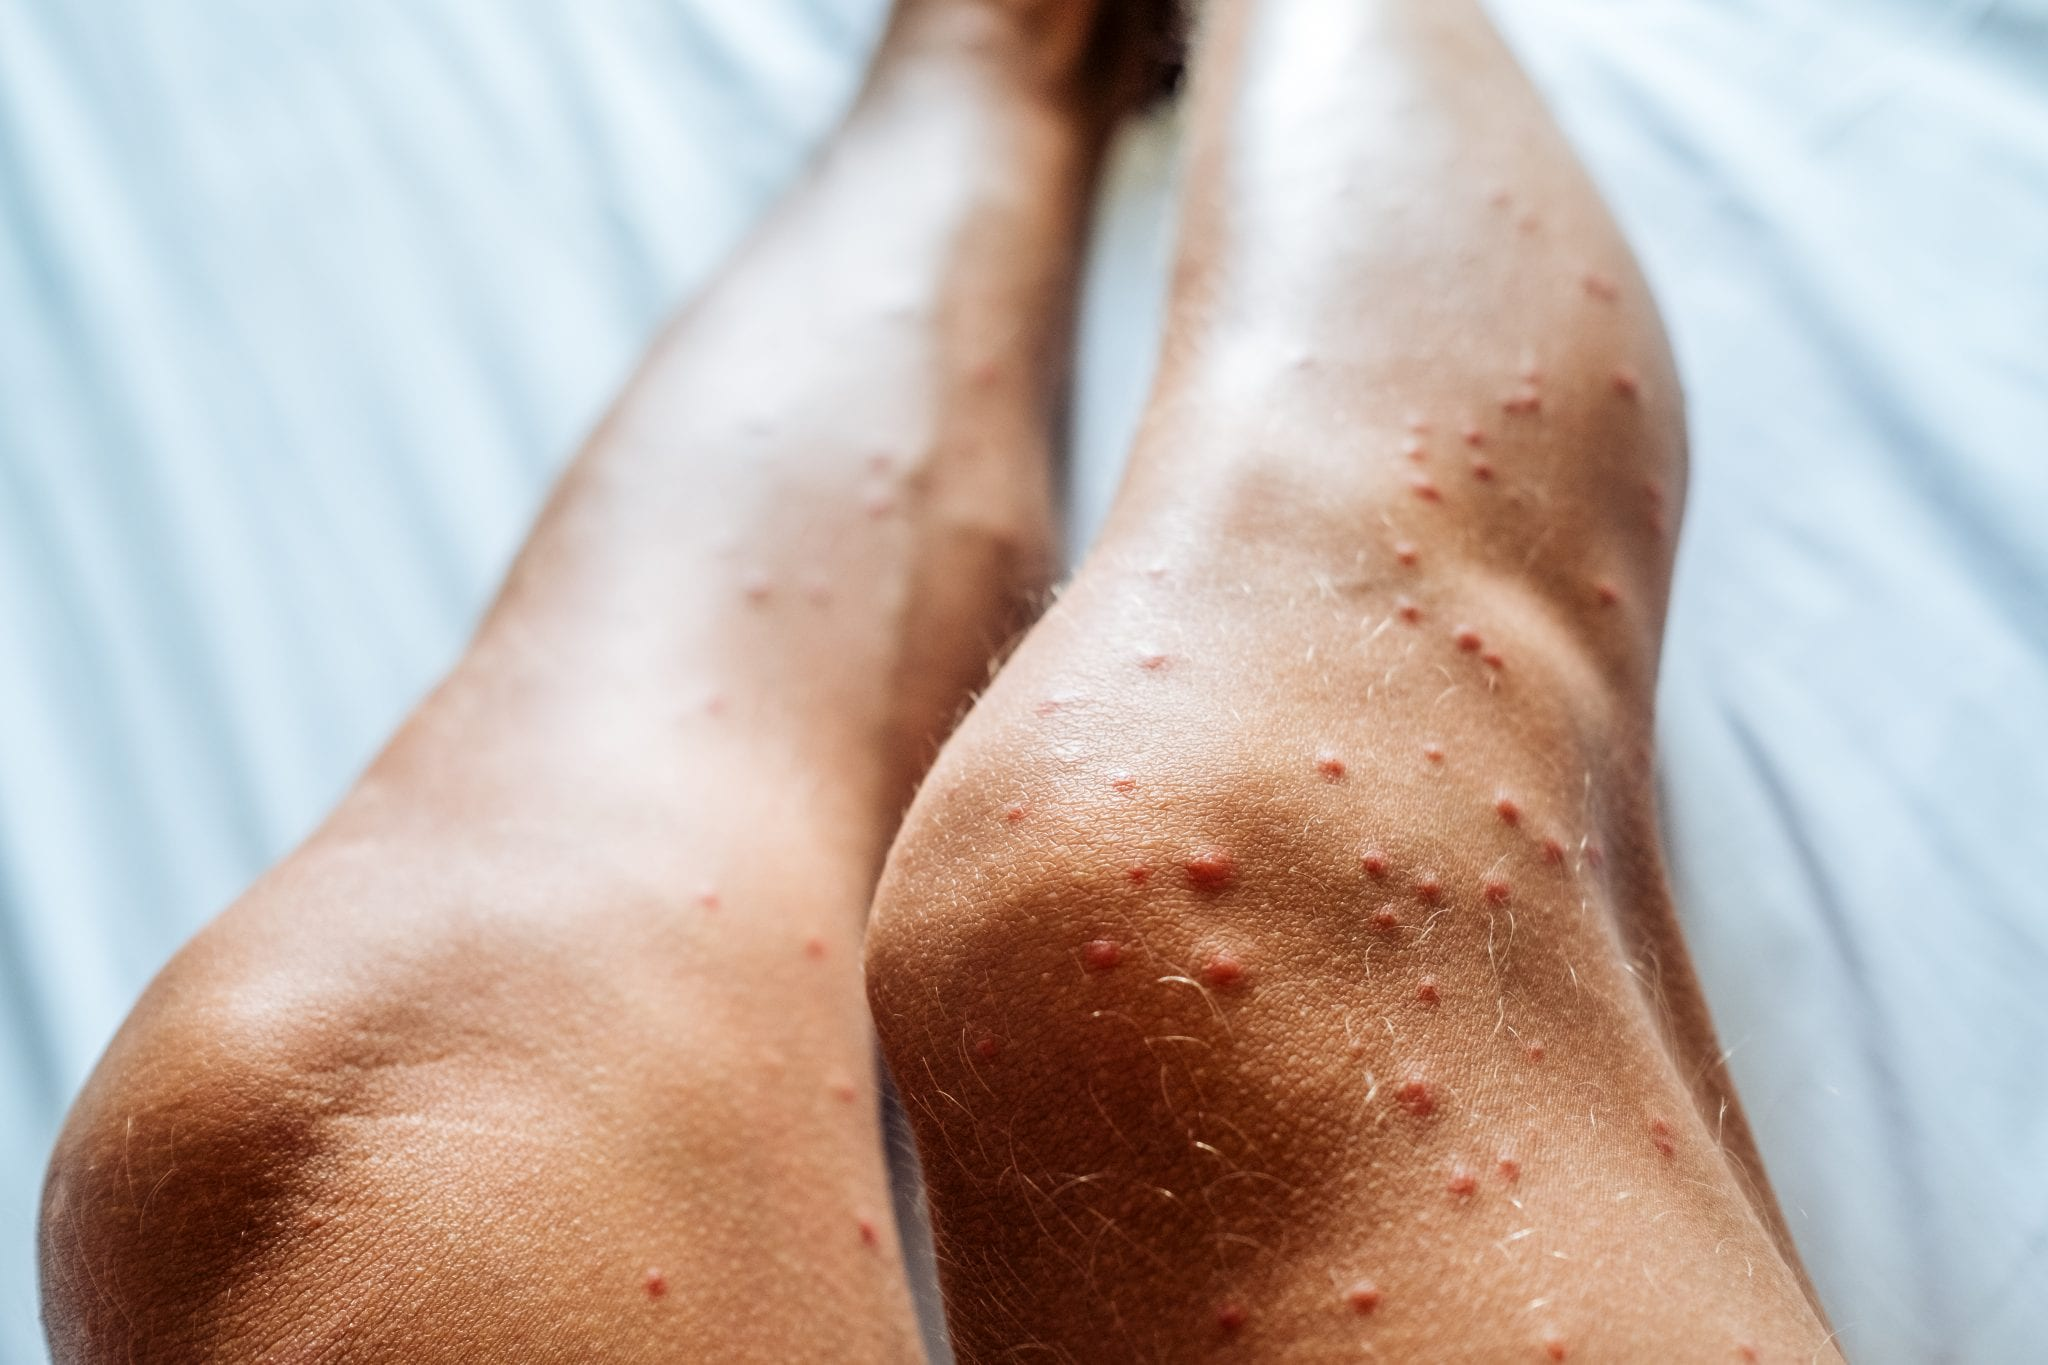 Person's legs with red bumps that are bug bites